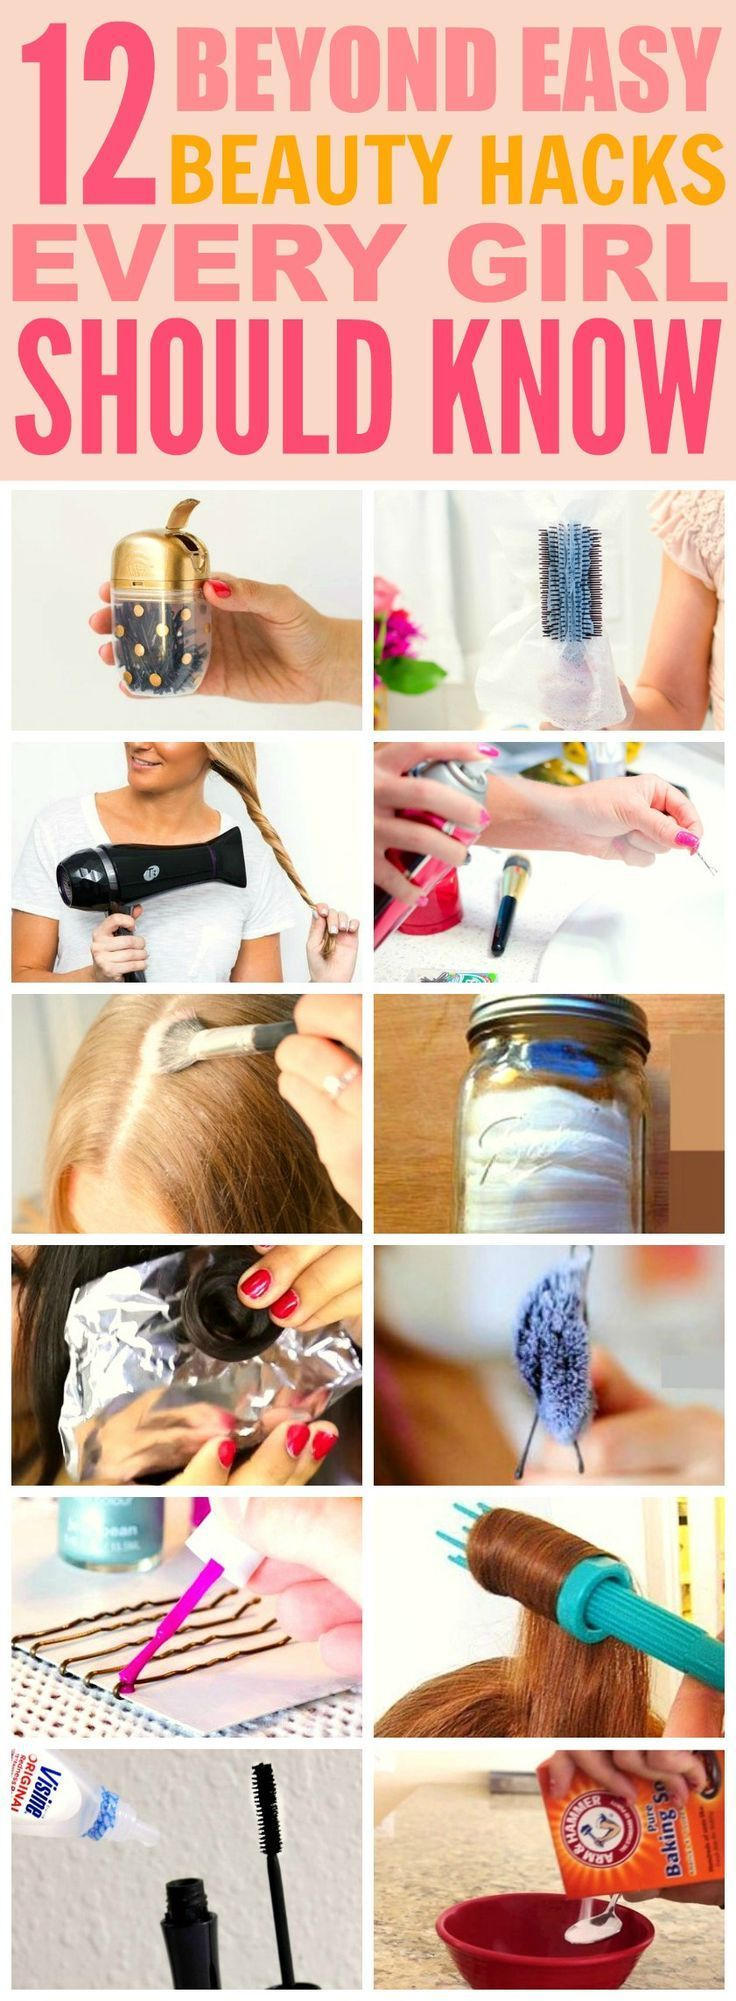 98 best DIY Beauty Skincare and Makeup images on Natural